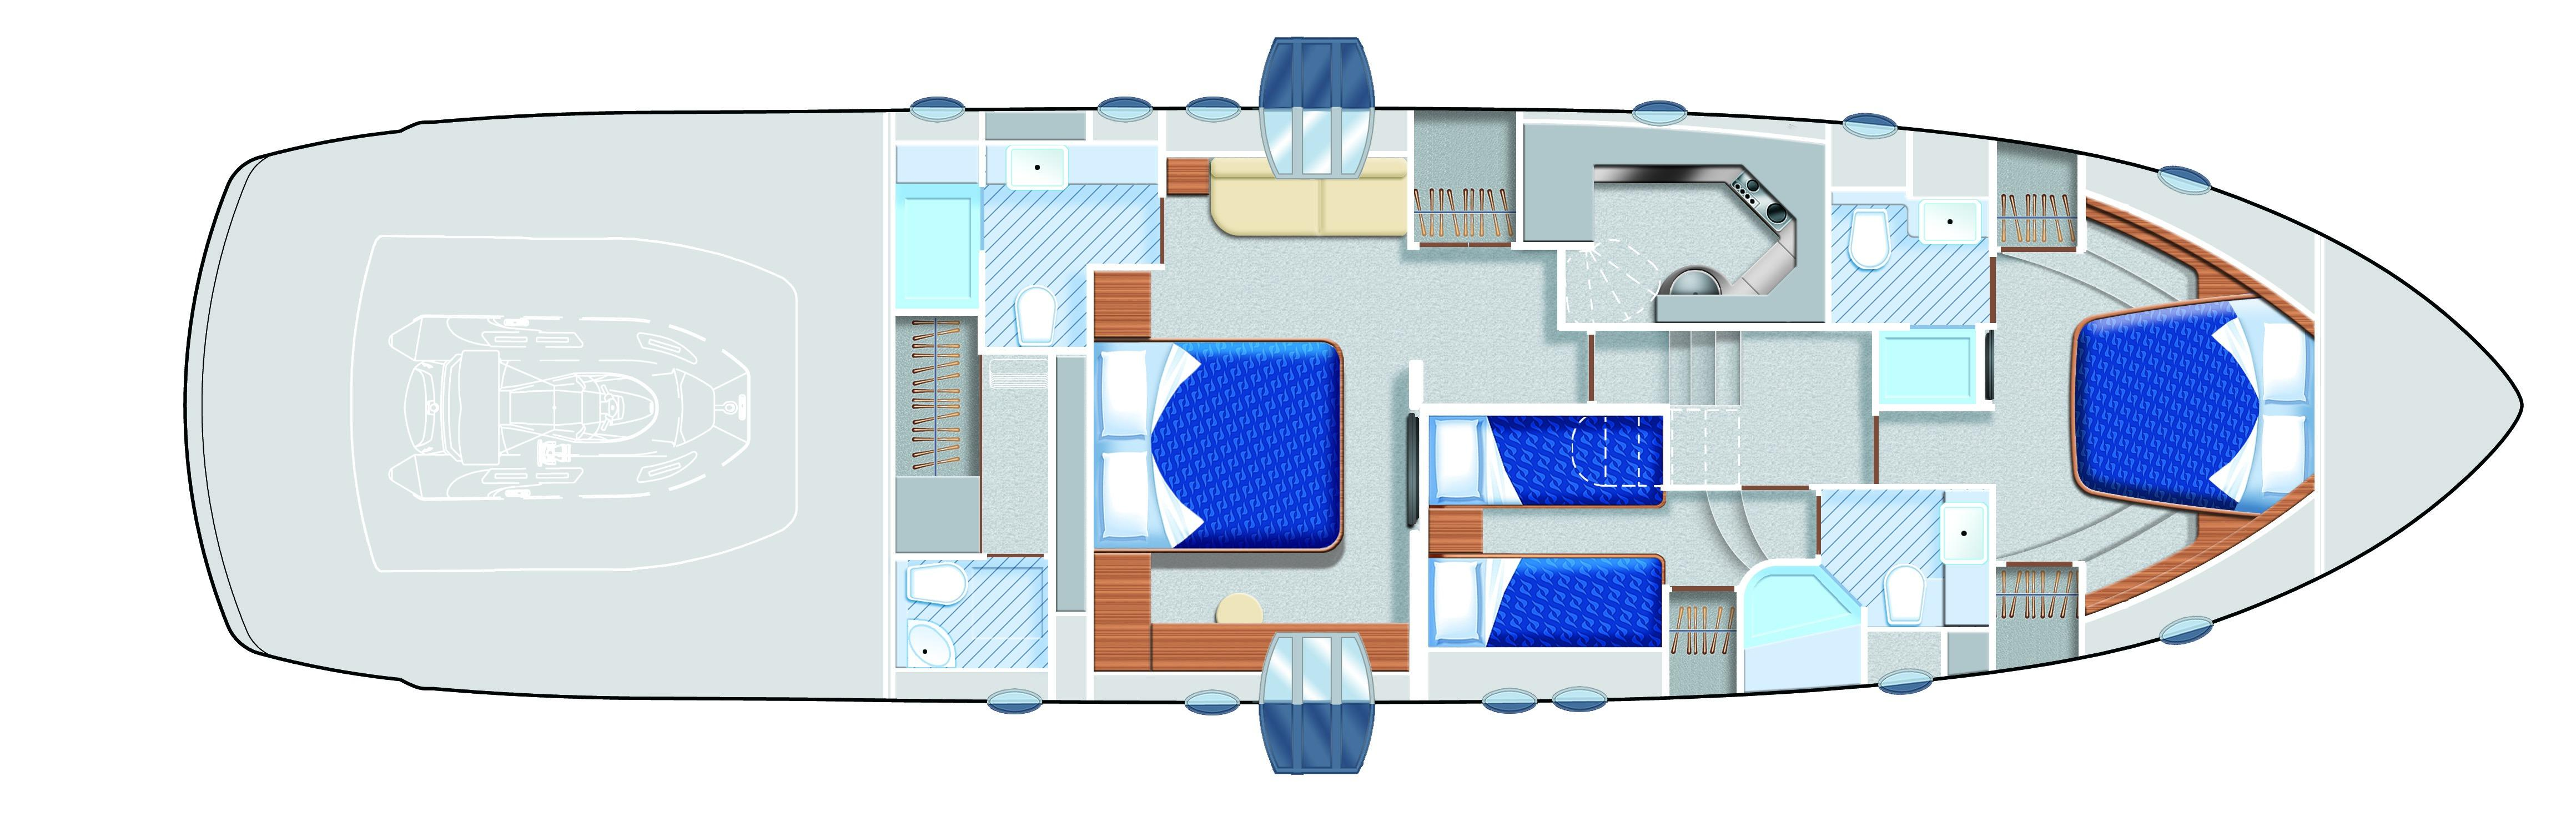 Manufacturer Provided Image: Pershing 64 Lower Deck Layout Plan